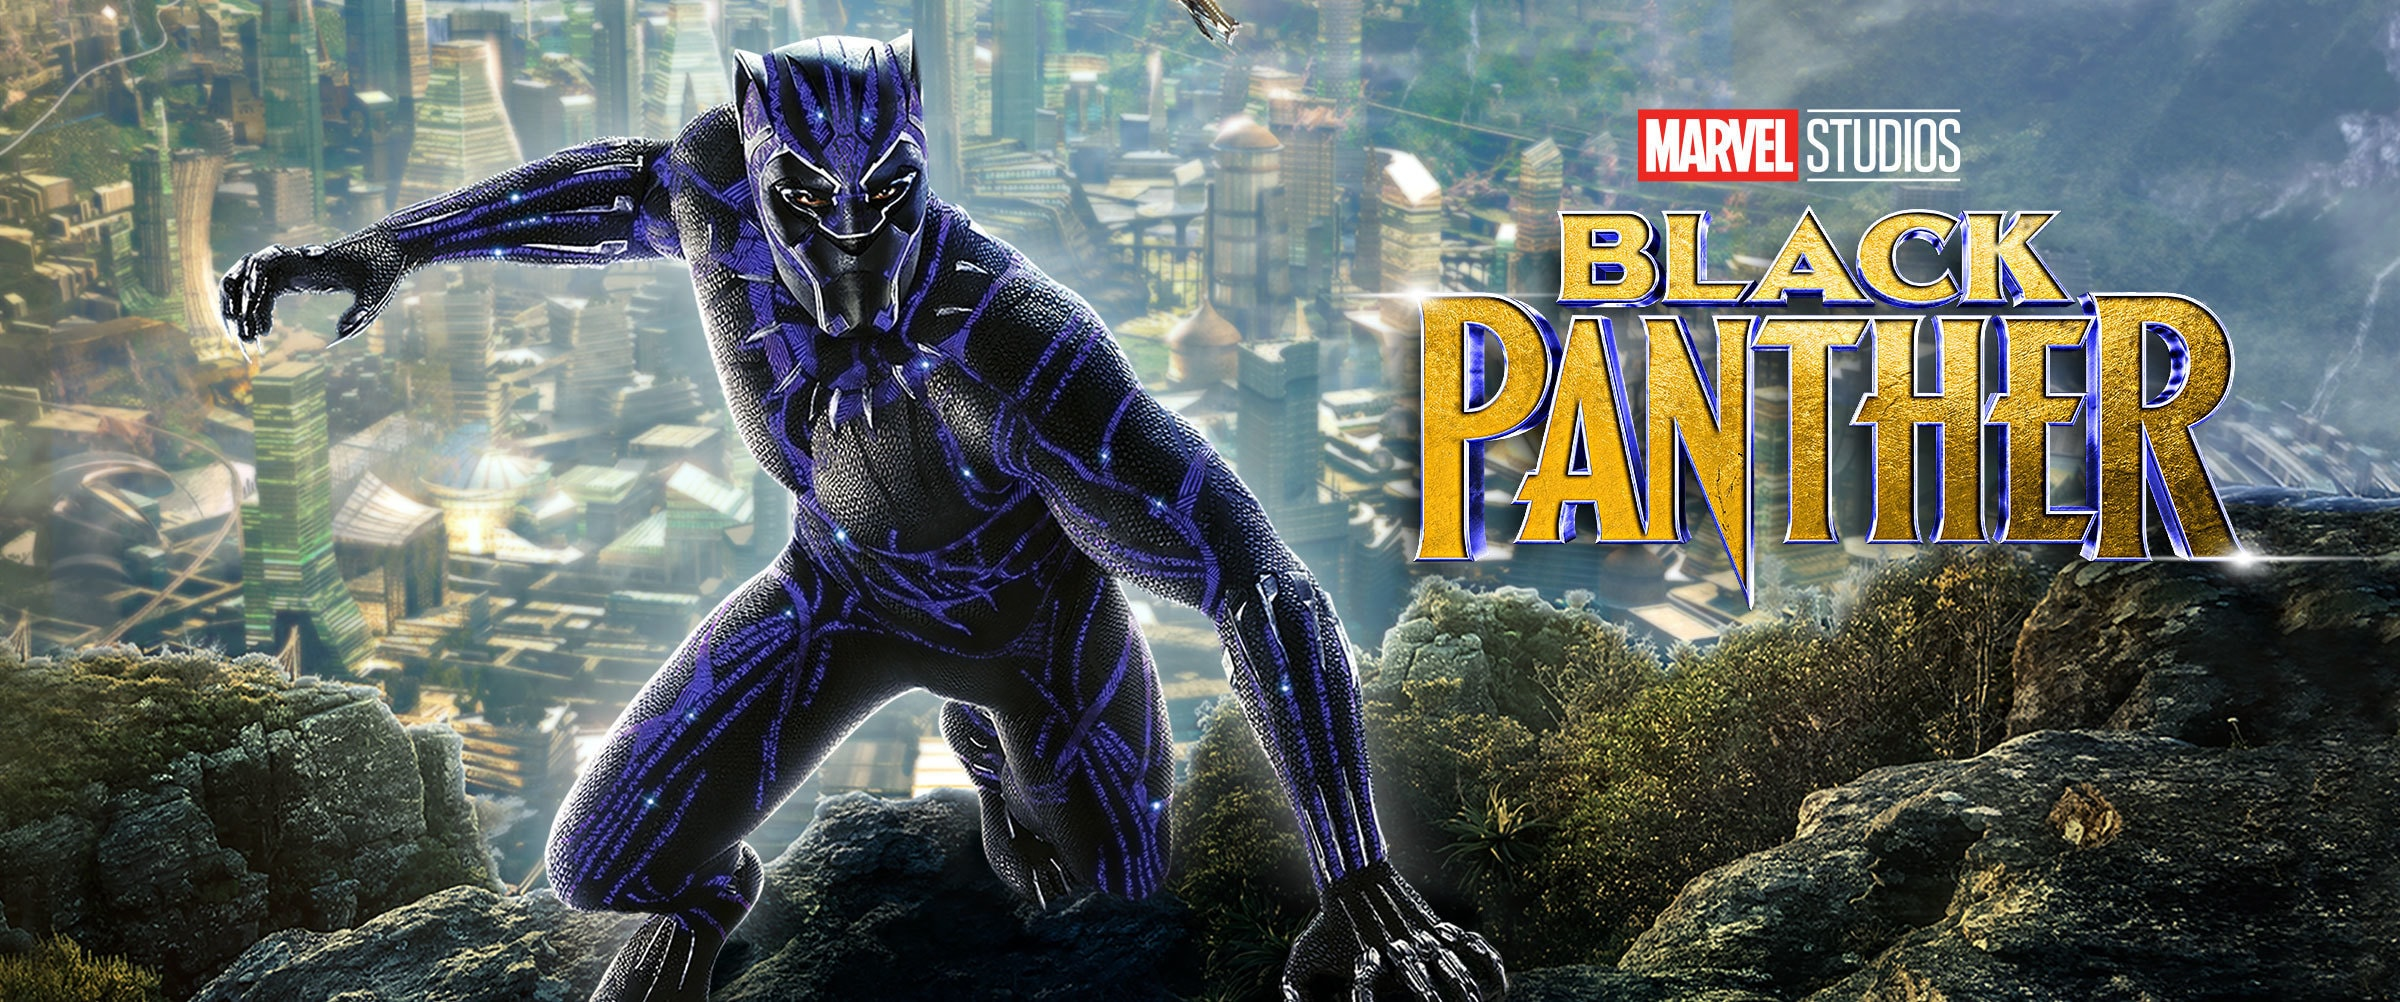 Marvel Studios' Black Panther - on Digital HD - Emea Banner